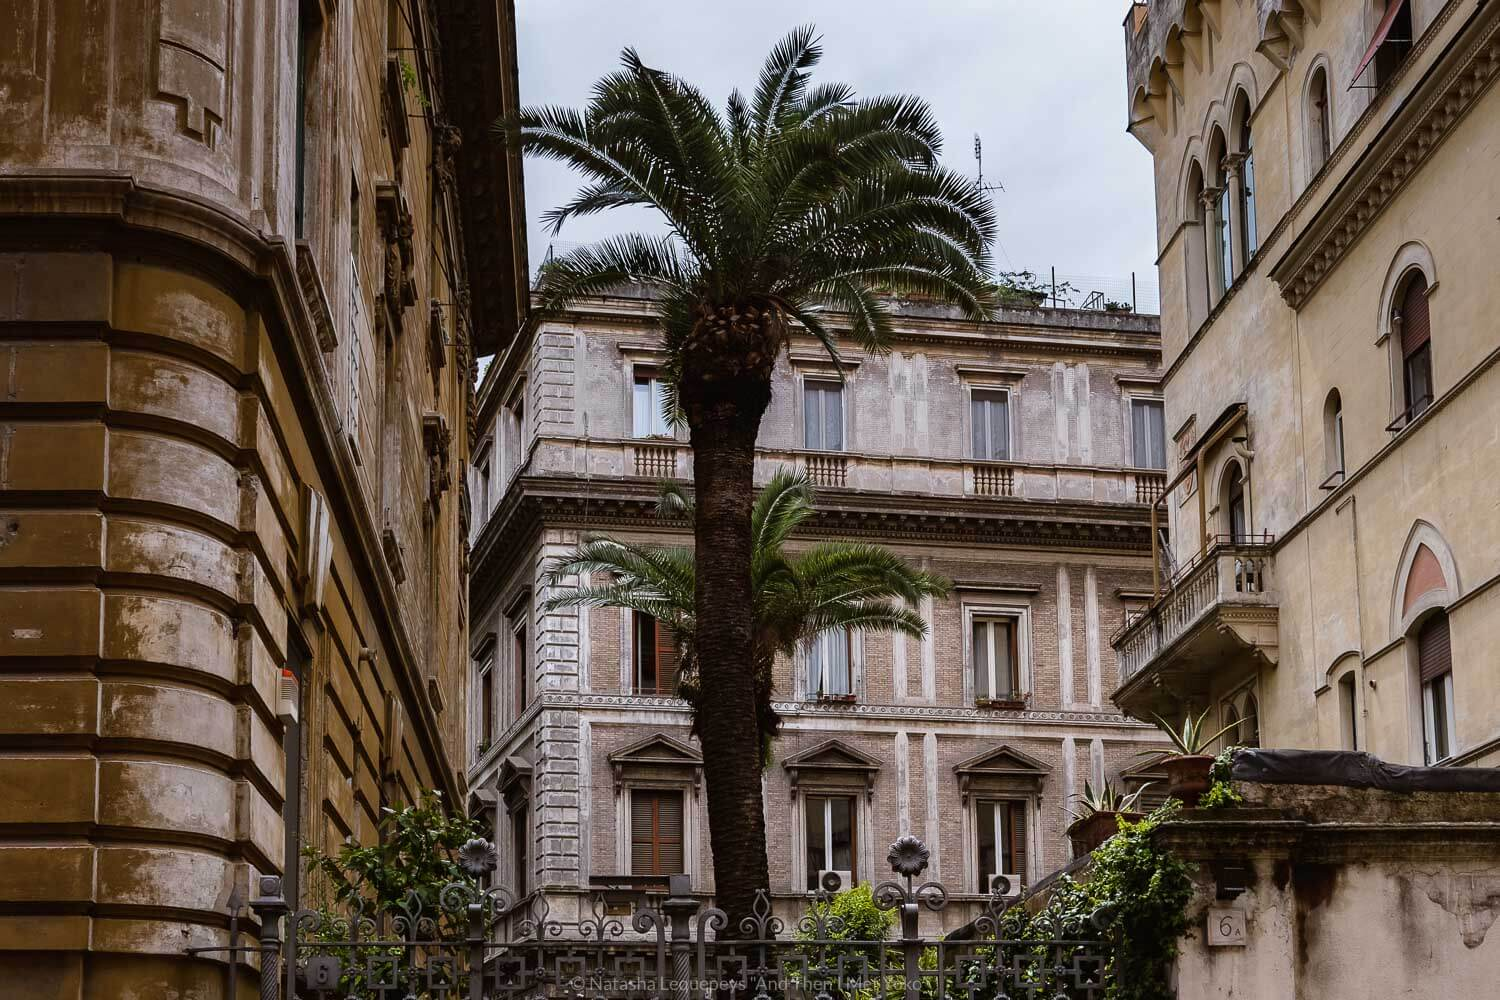 """Buildings in the Jewish Ghetto, Rome. Travel photography and guide by © Natasha Lequepeys for """"And Then I Met Yoko"""". #rome #jewishghettorome #italy #fujifilm #travelphotography"""